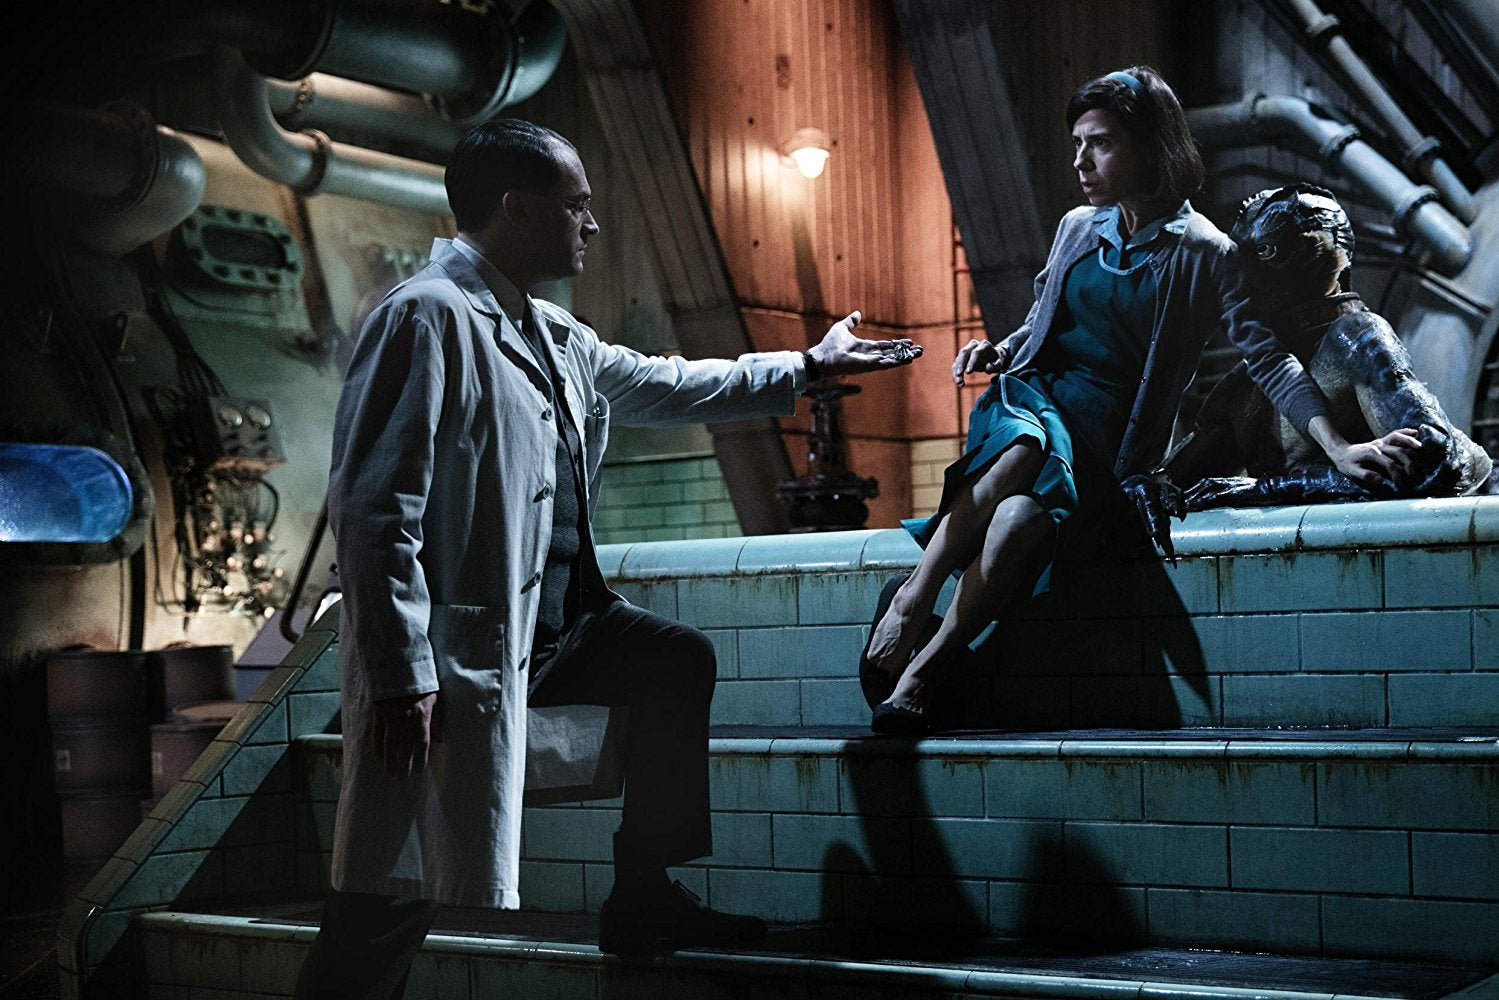 Guillermo Del Toro's 'The Shape Of Water' Is A Beautiful Love Story Where The Story Doesn't Matter